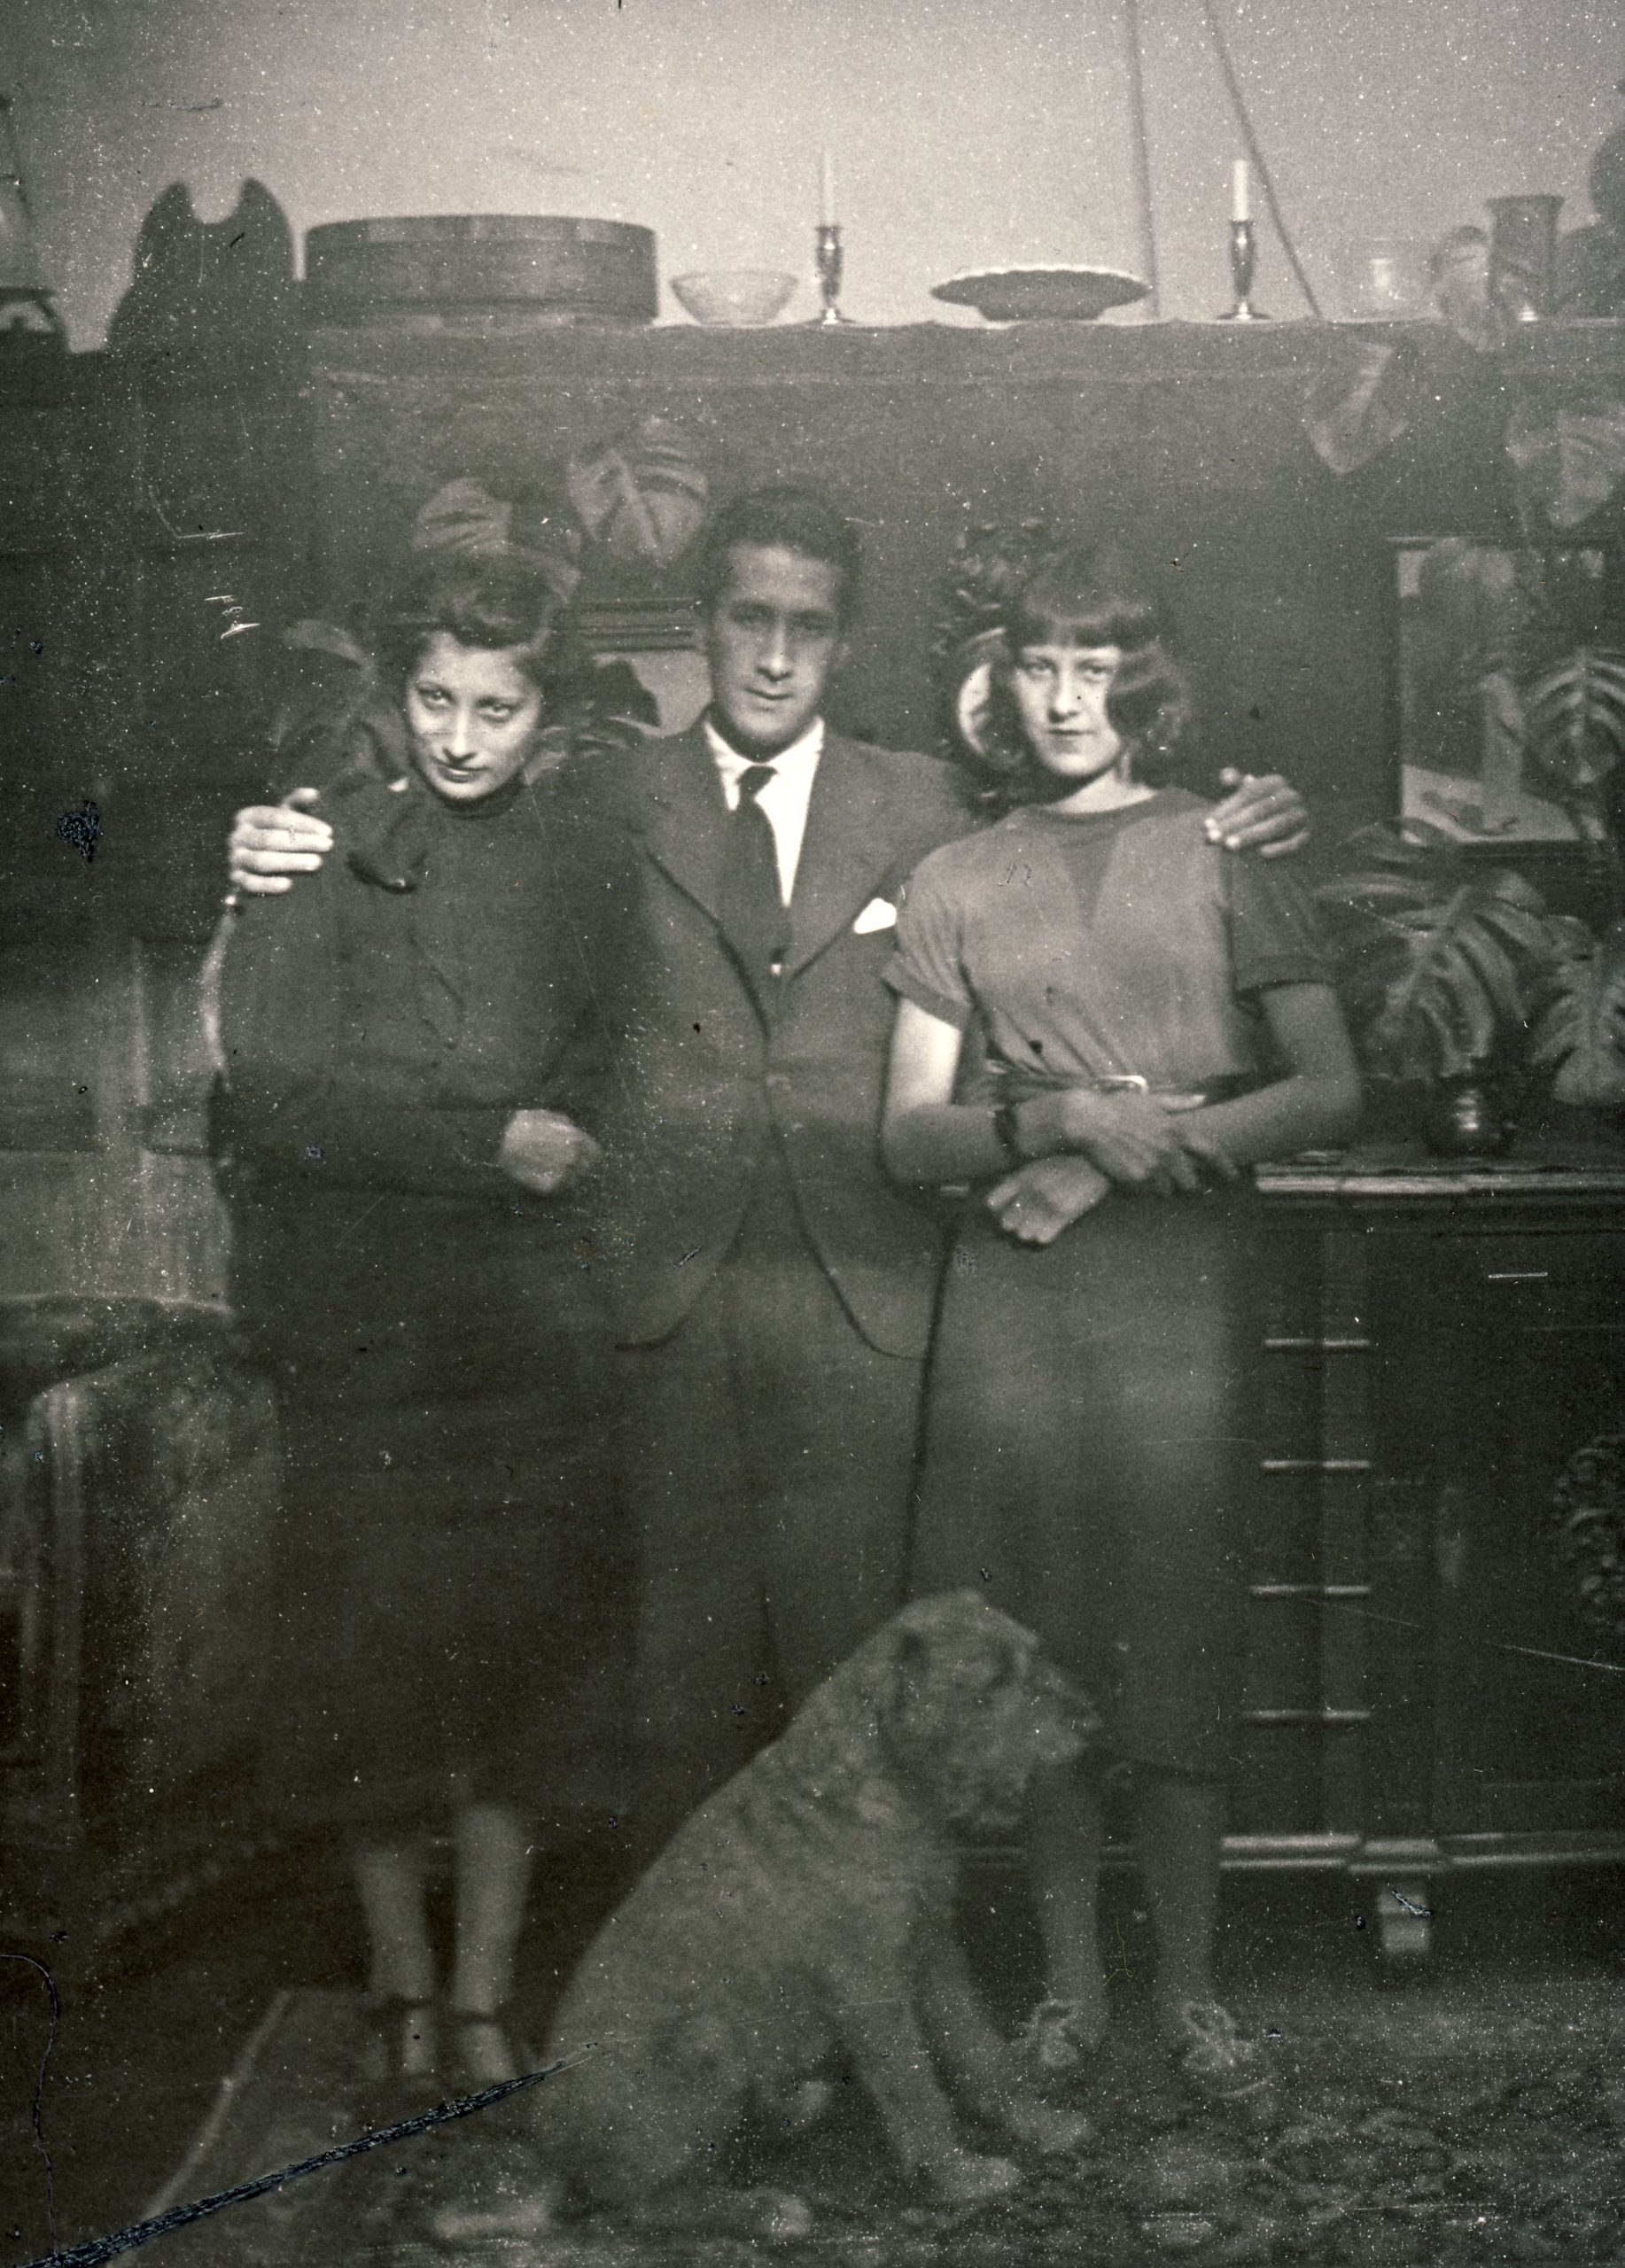 Noor, Vilayat, and Claire. 1937, The Hague, The Netherlands.